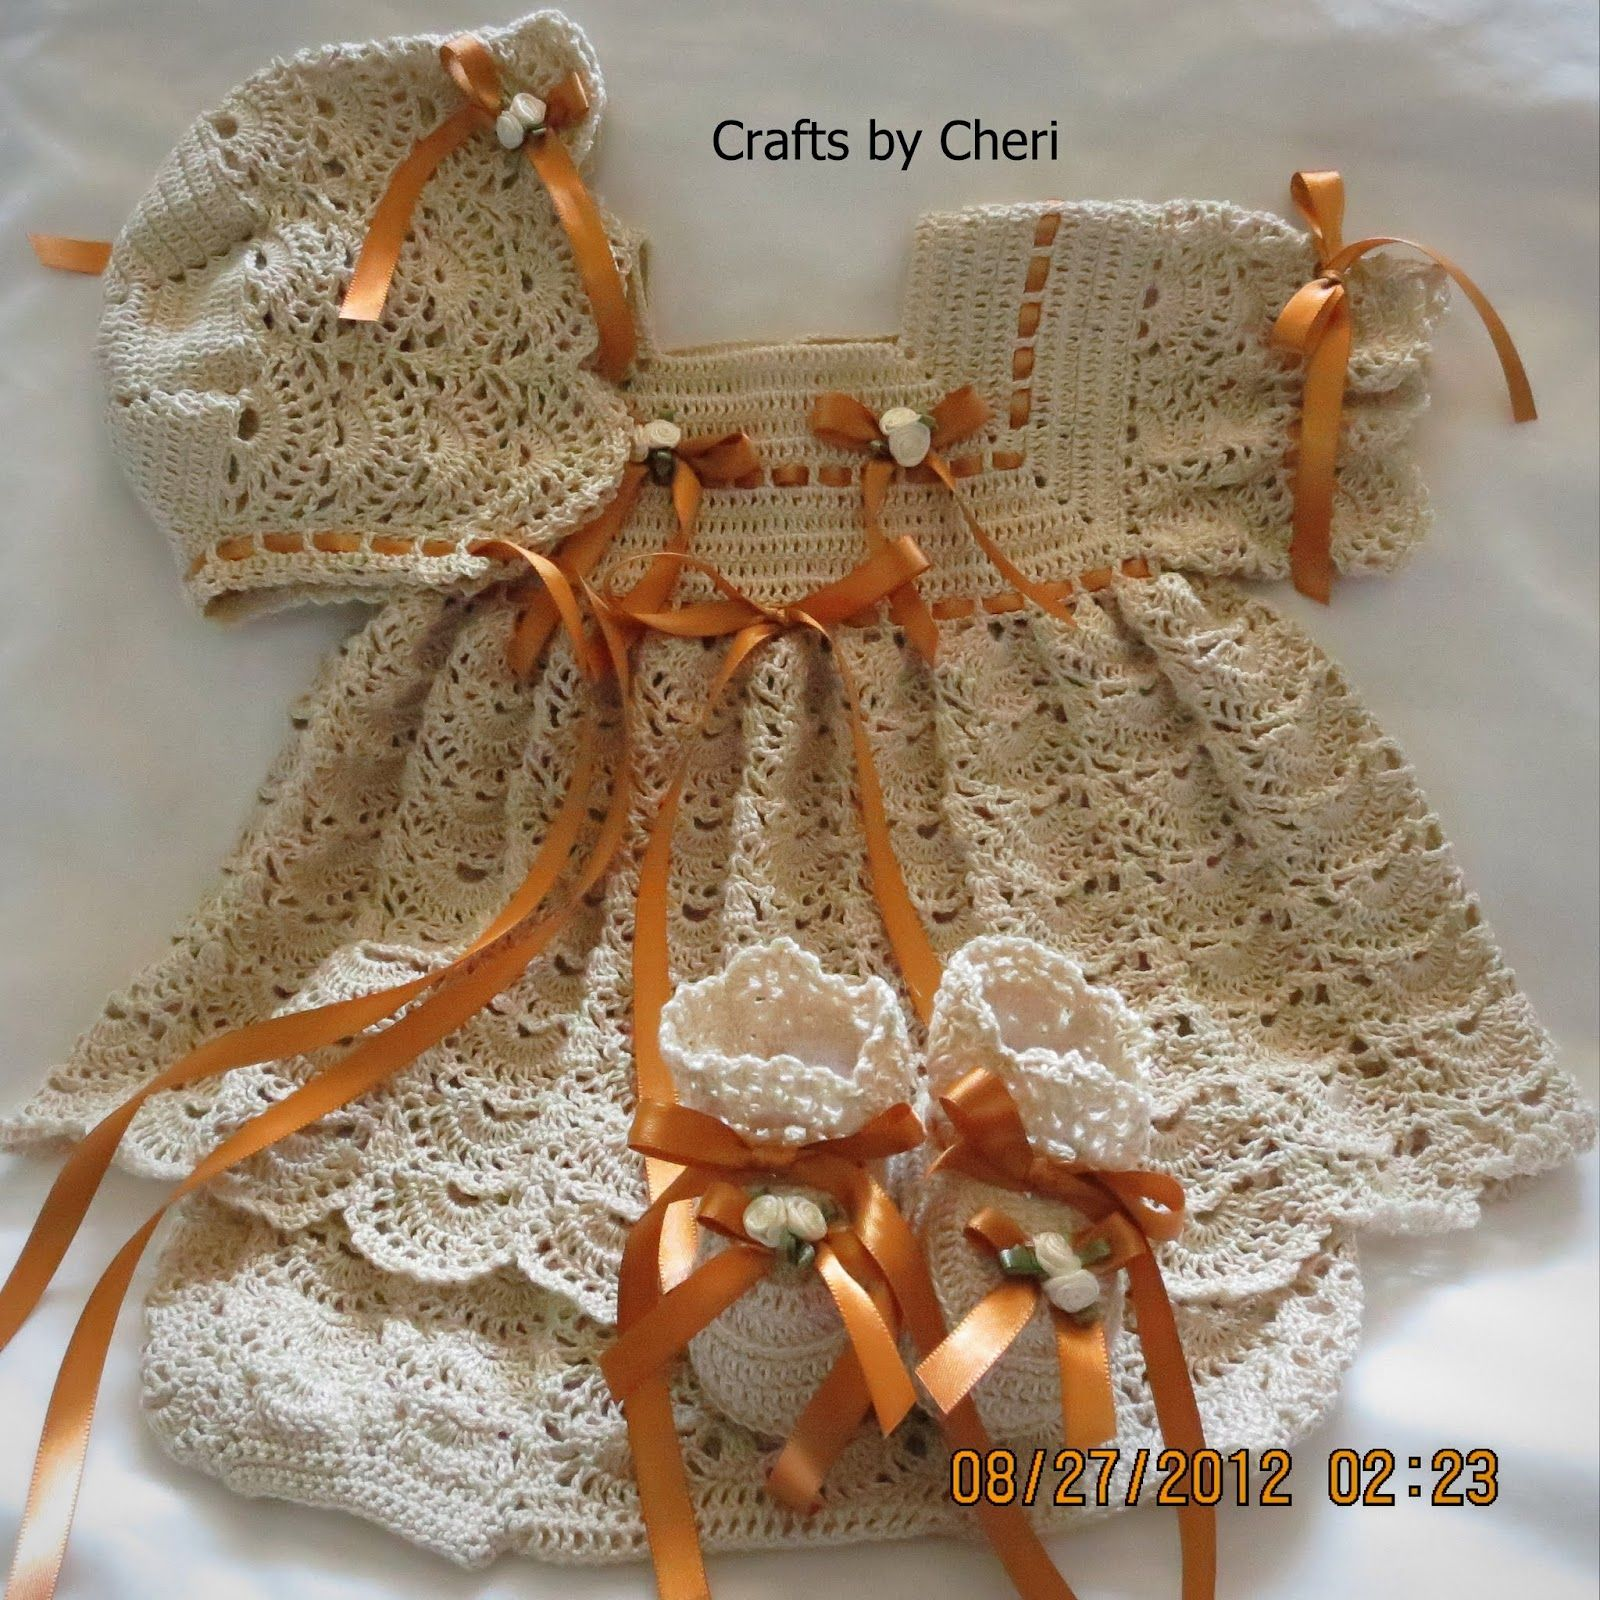 Crochet baby dress pattern baby doll clothing or craftsbycheri crochet baby dress pattern baby doll clothing or craftsbycheri crochet custom dt1010fo